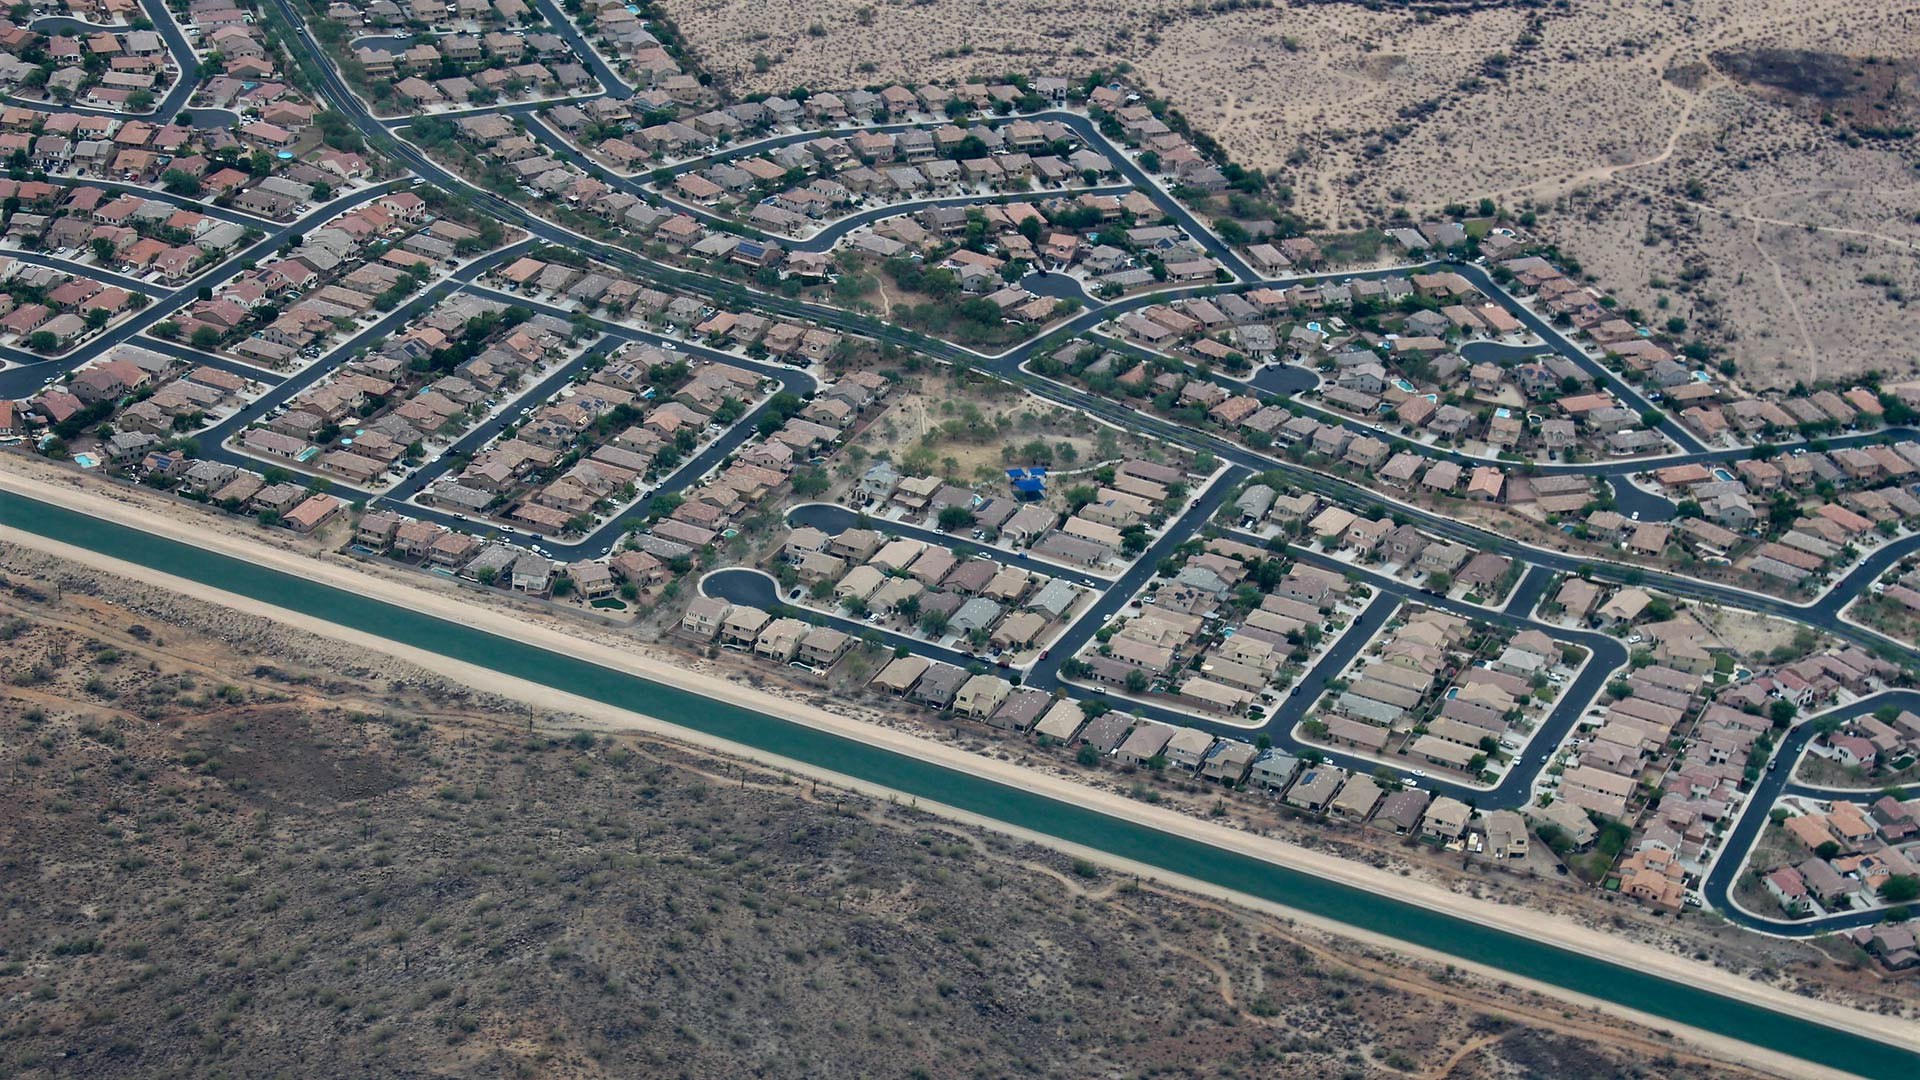 The Central Arizona Project pulls water from the Colorado River to provide for the cities of Phoenix and Tucson.